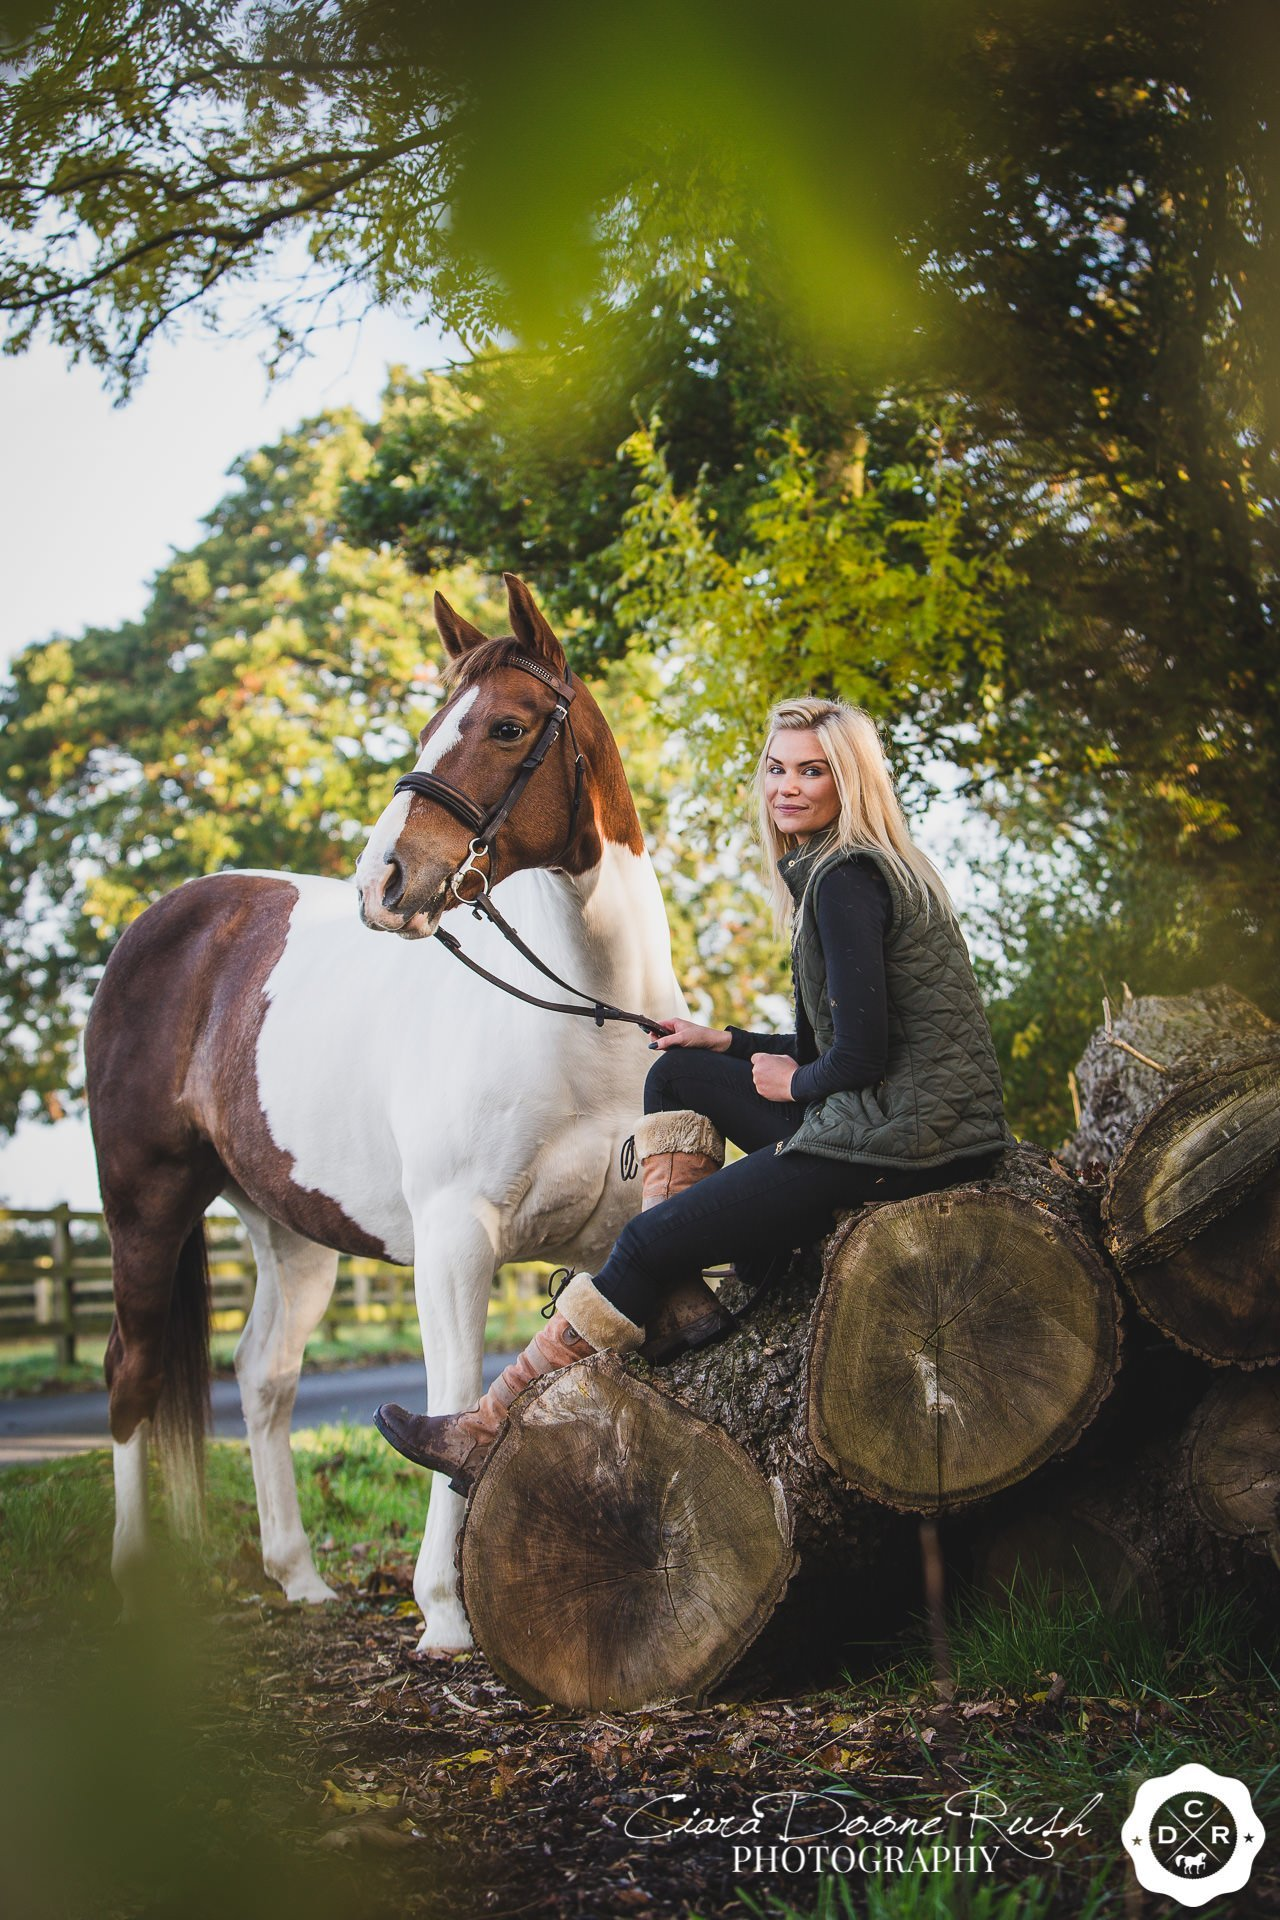 A woman with her horse on an autumnul horse and rider photo shoot